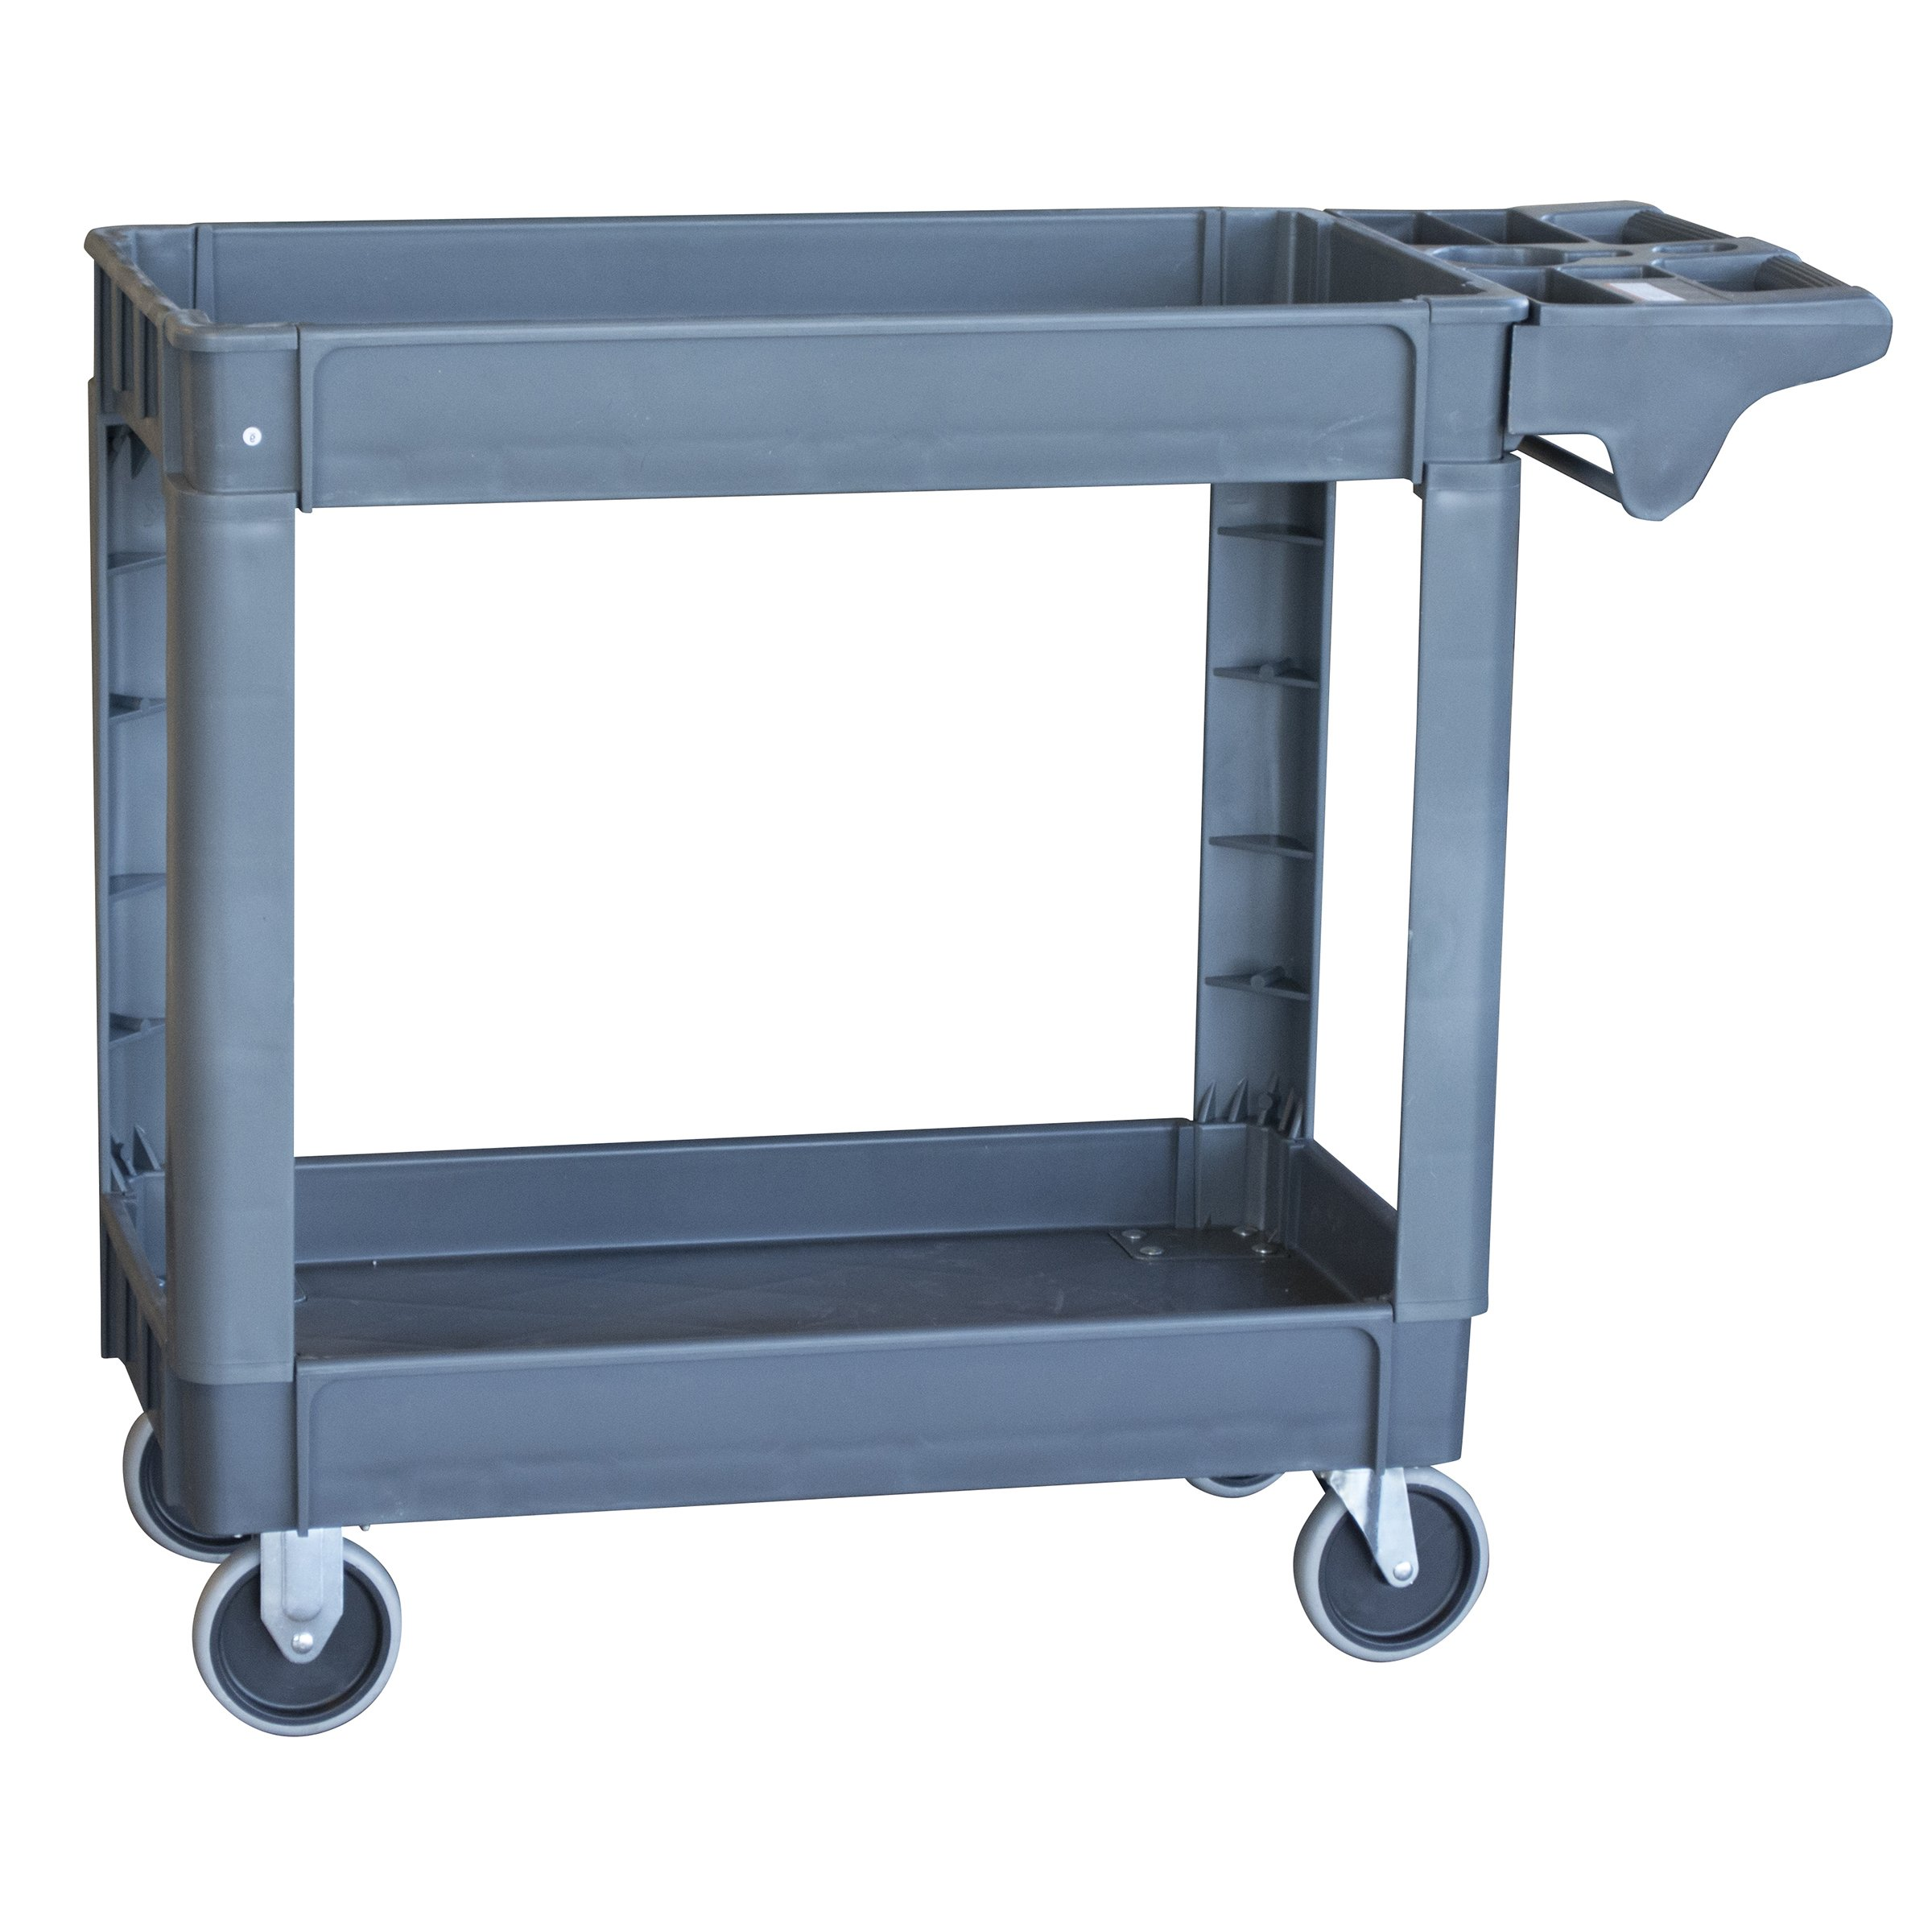 Pro Series SCART550 Two-Shelf Heavy Duty Utility Cart with 550 lb Capacity, Large